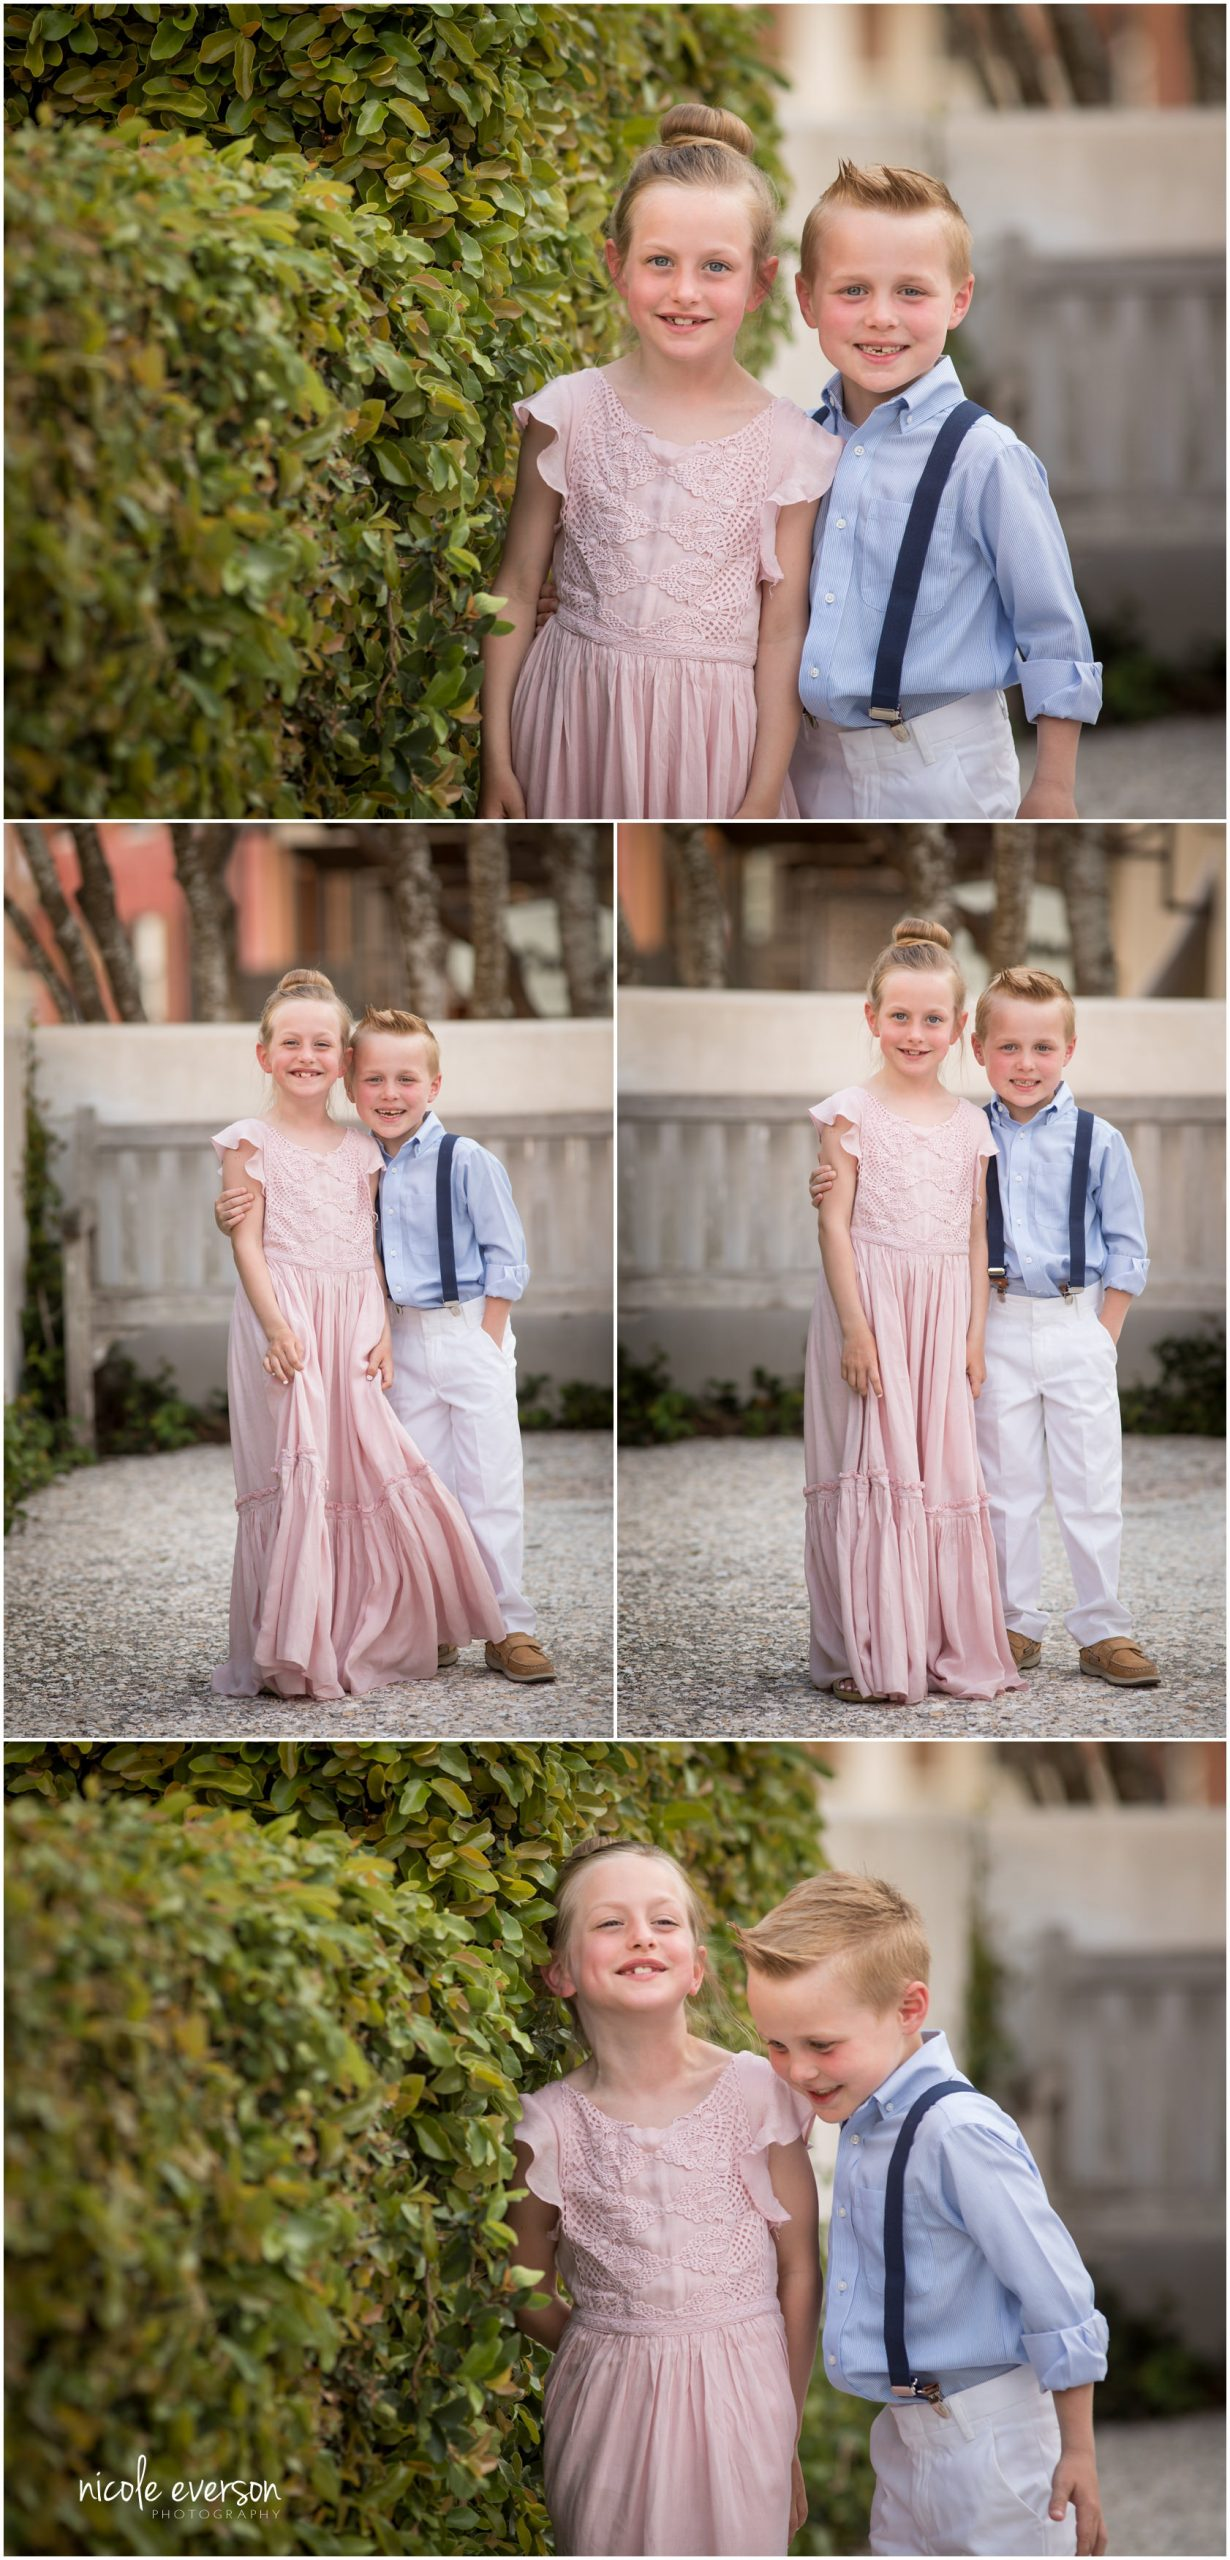 Sibling photos. Rosemary Beach family photography. Nicole Everson Photography.